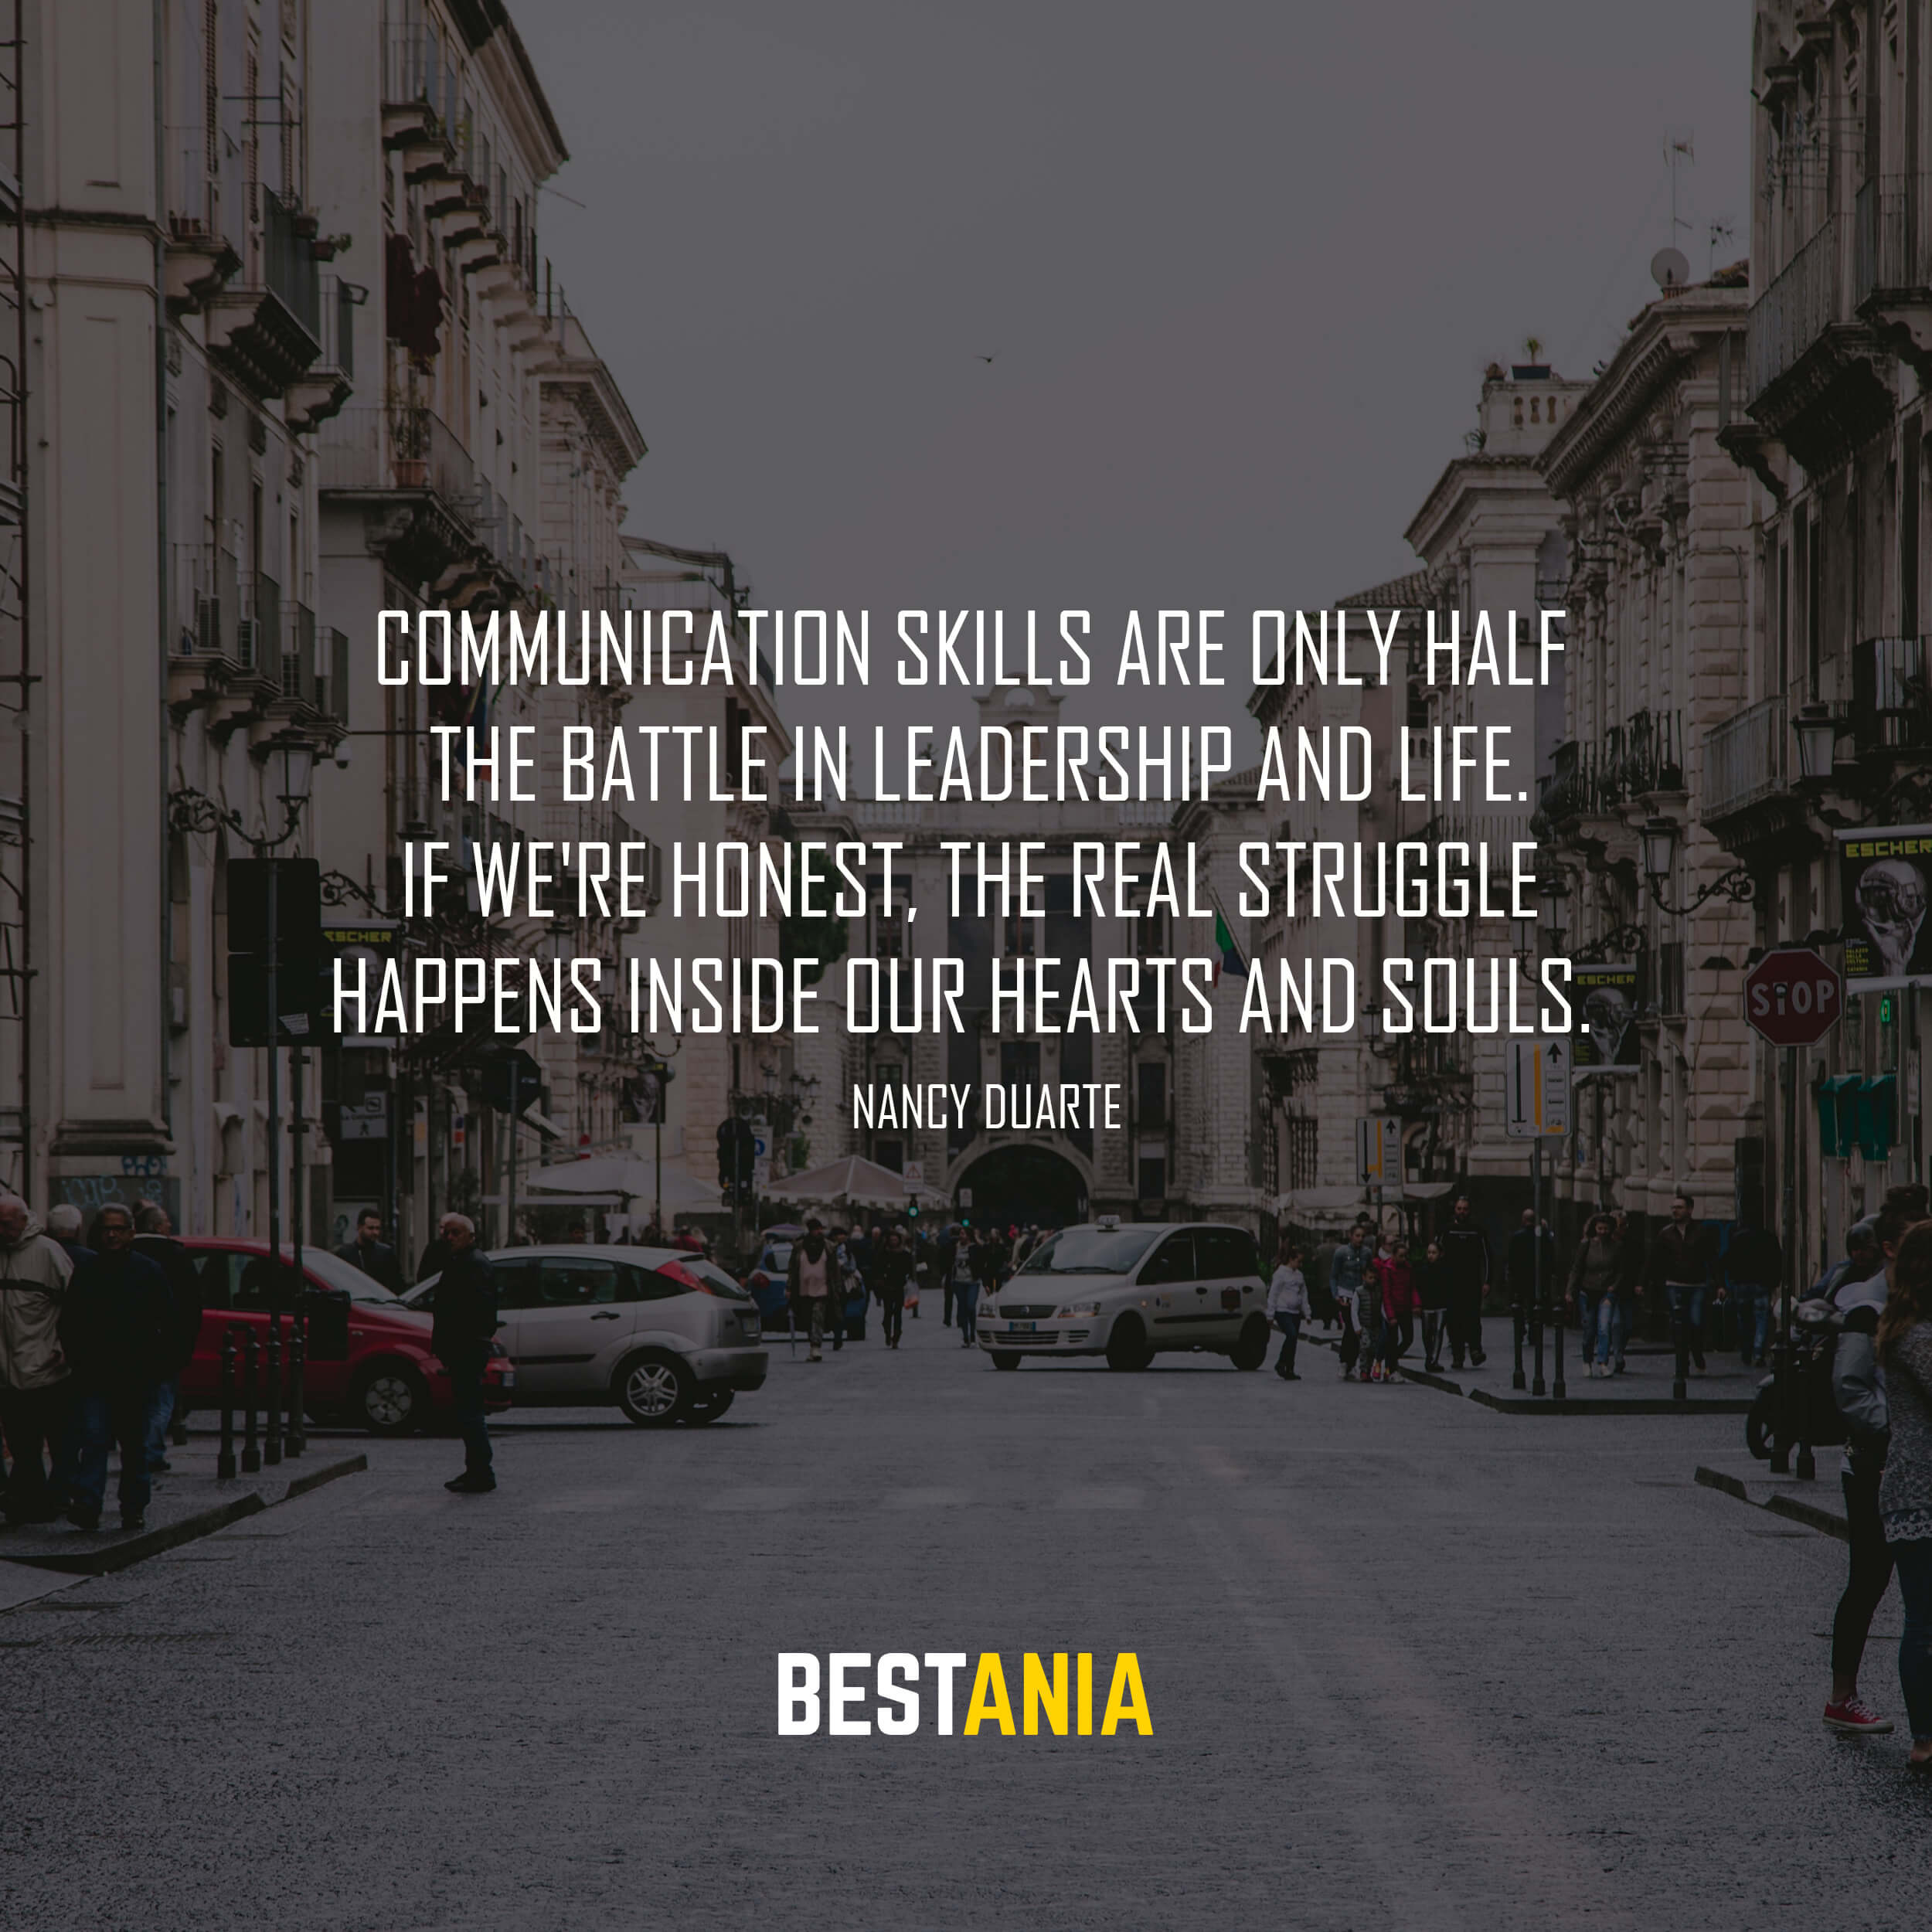 Communication skills are only half the battle in leadership and life. If we're honest, the real struggle happens inside our hearts and souls. Nancy Duarte